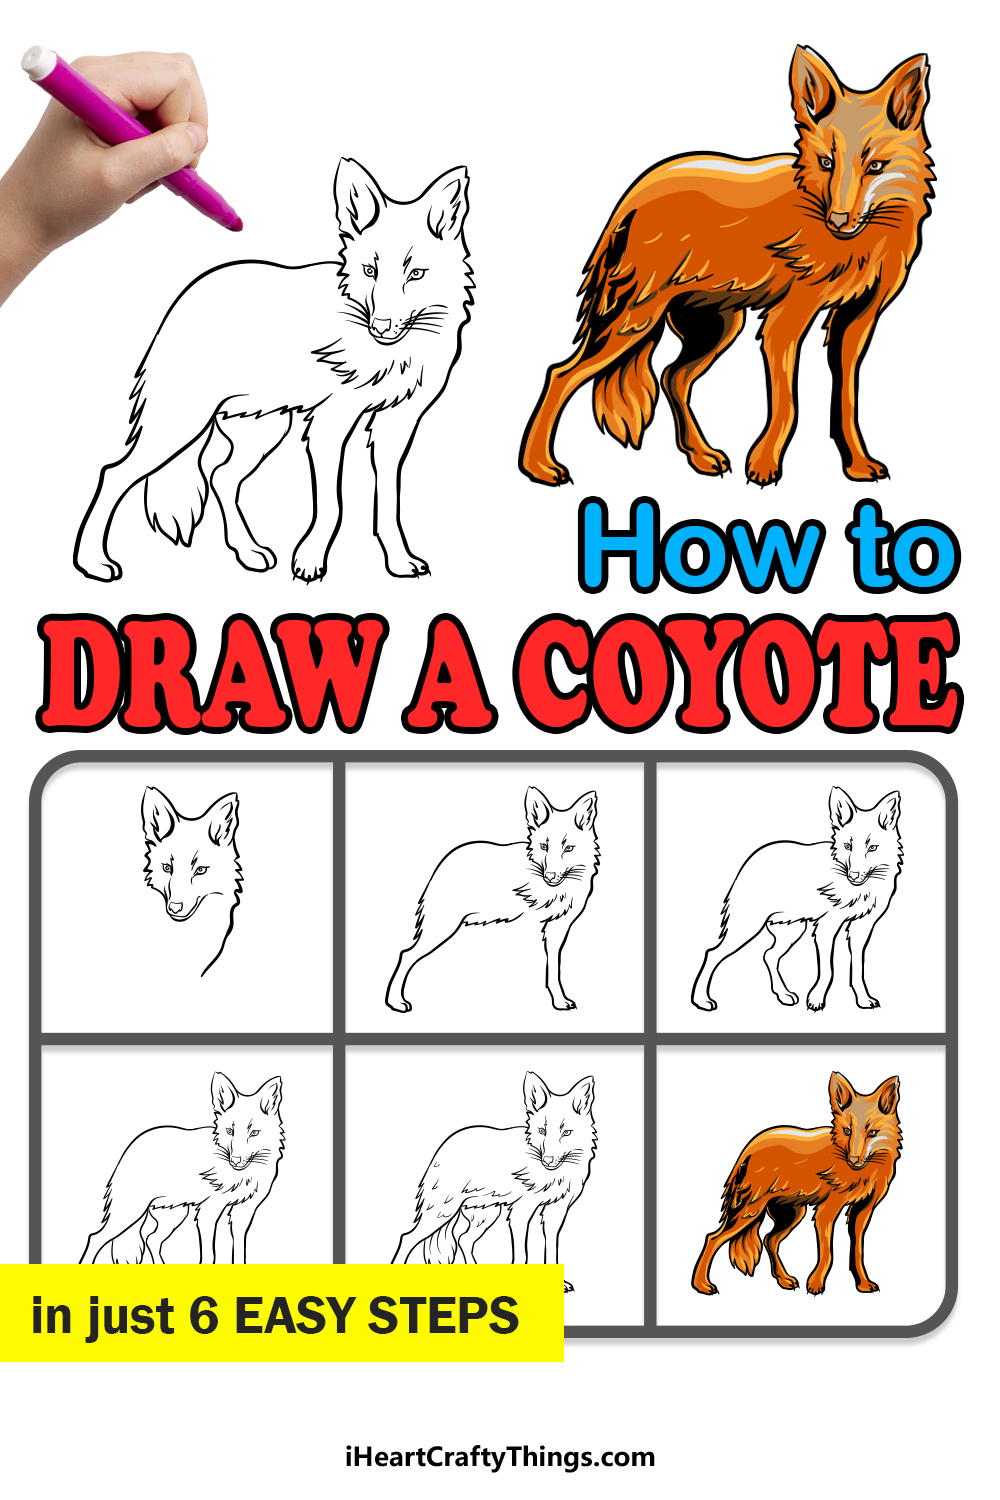 how to draw a coyote in 6 easy steps